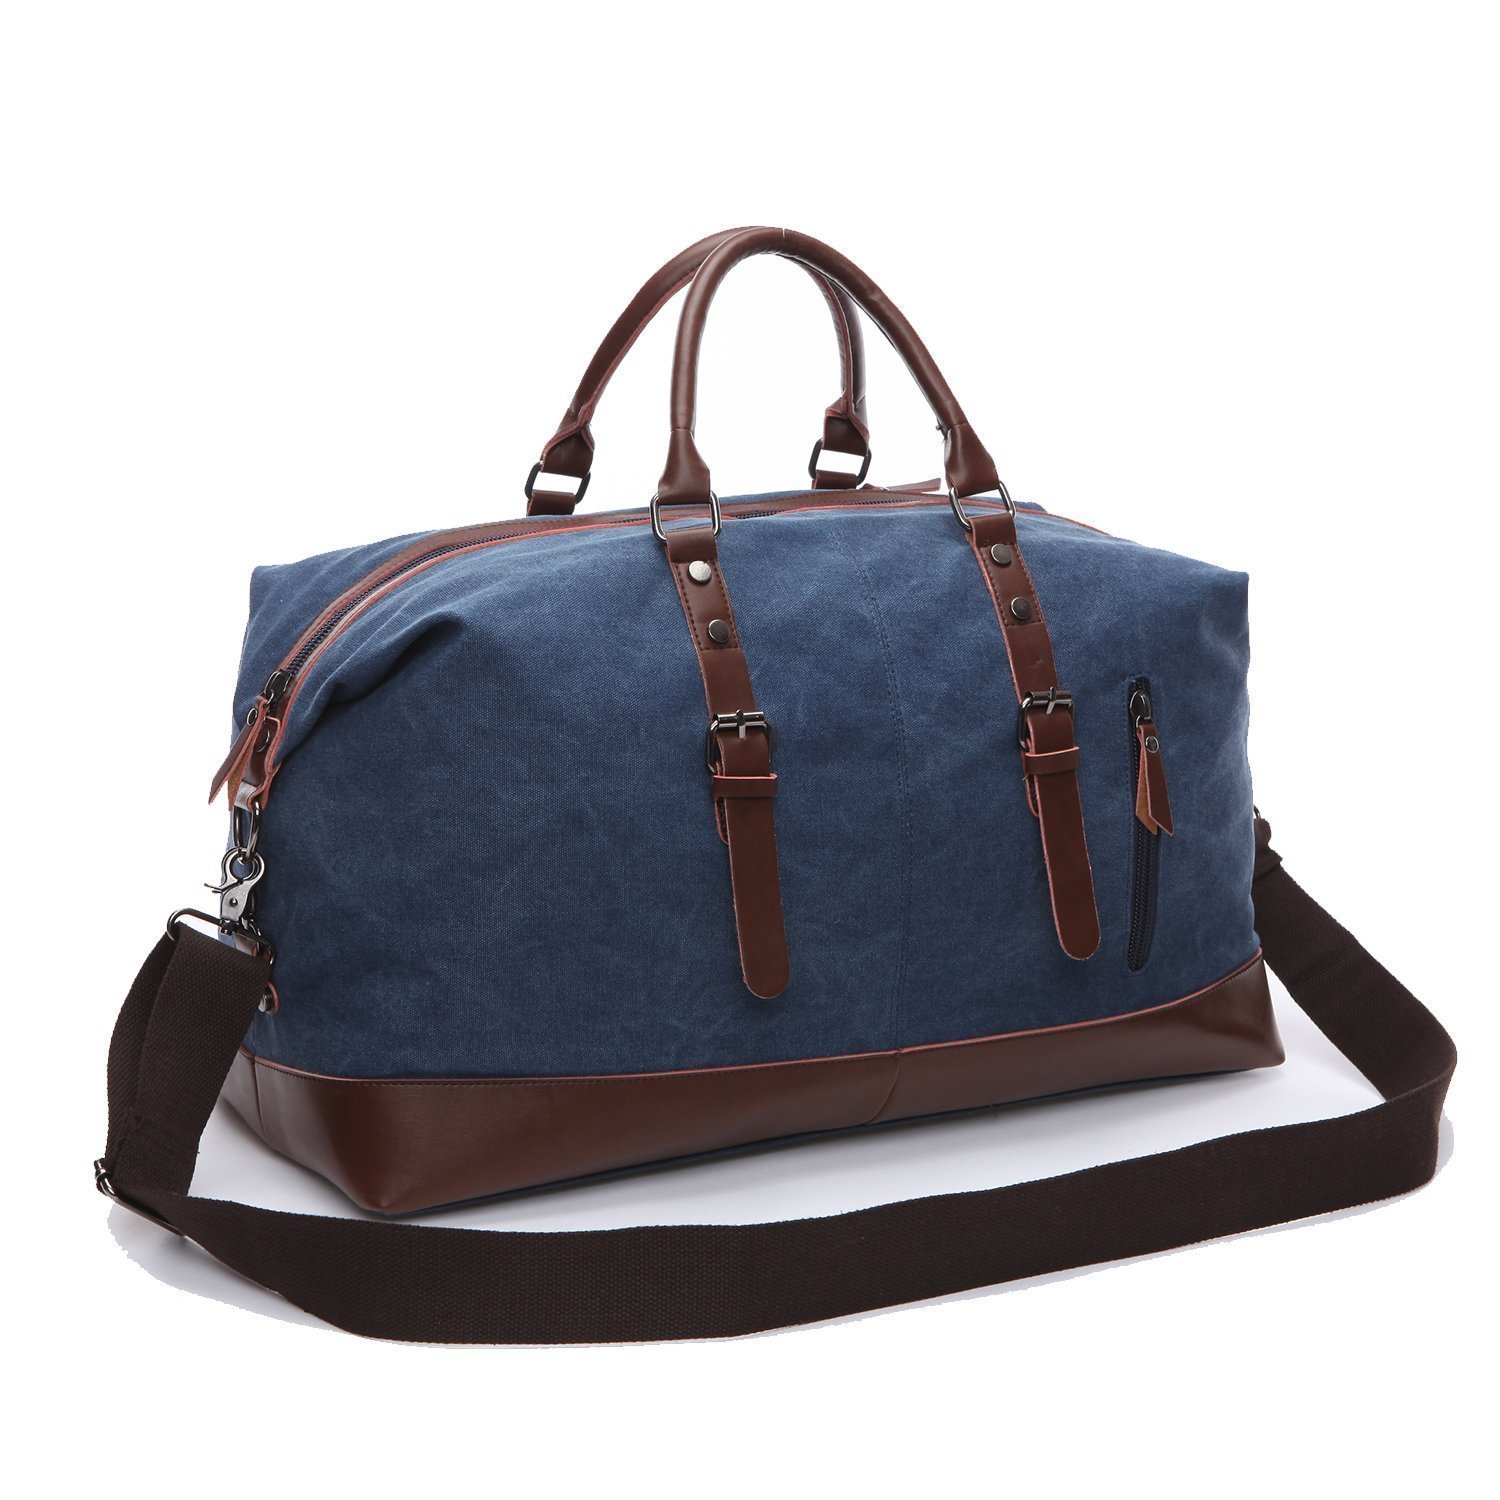 Canvas Duffel Bag Oversized Travel Overnight Weekender Luggage for Men Women K8655